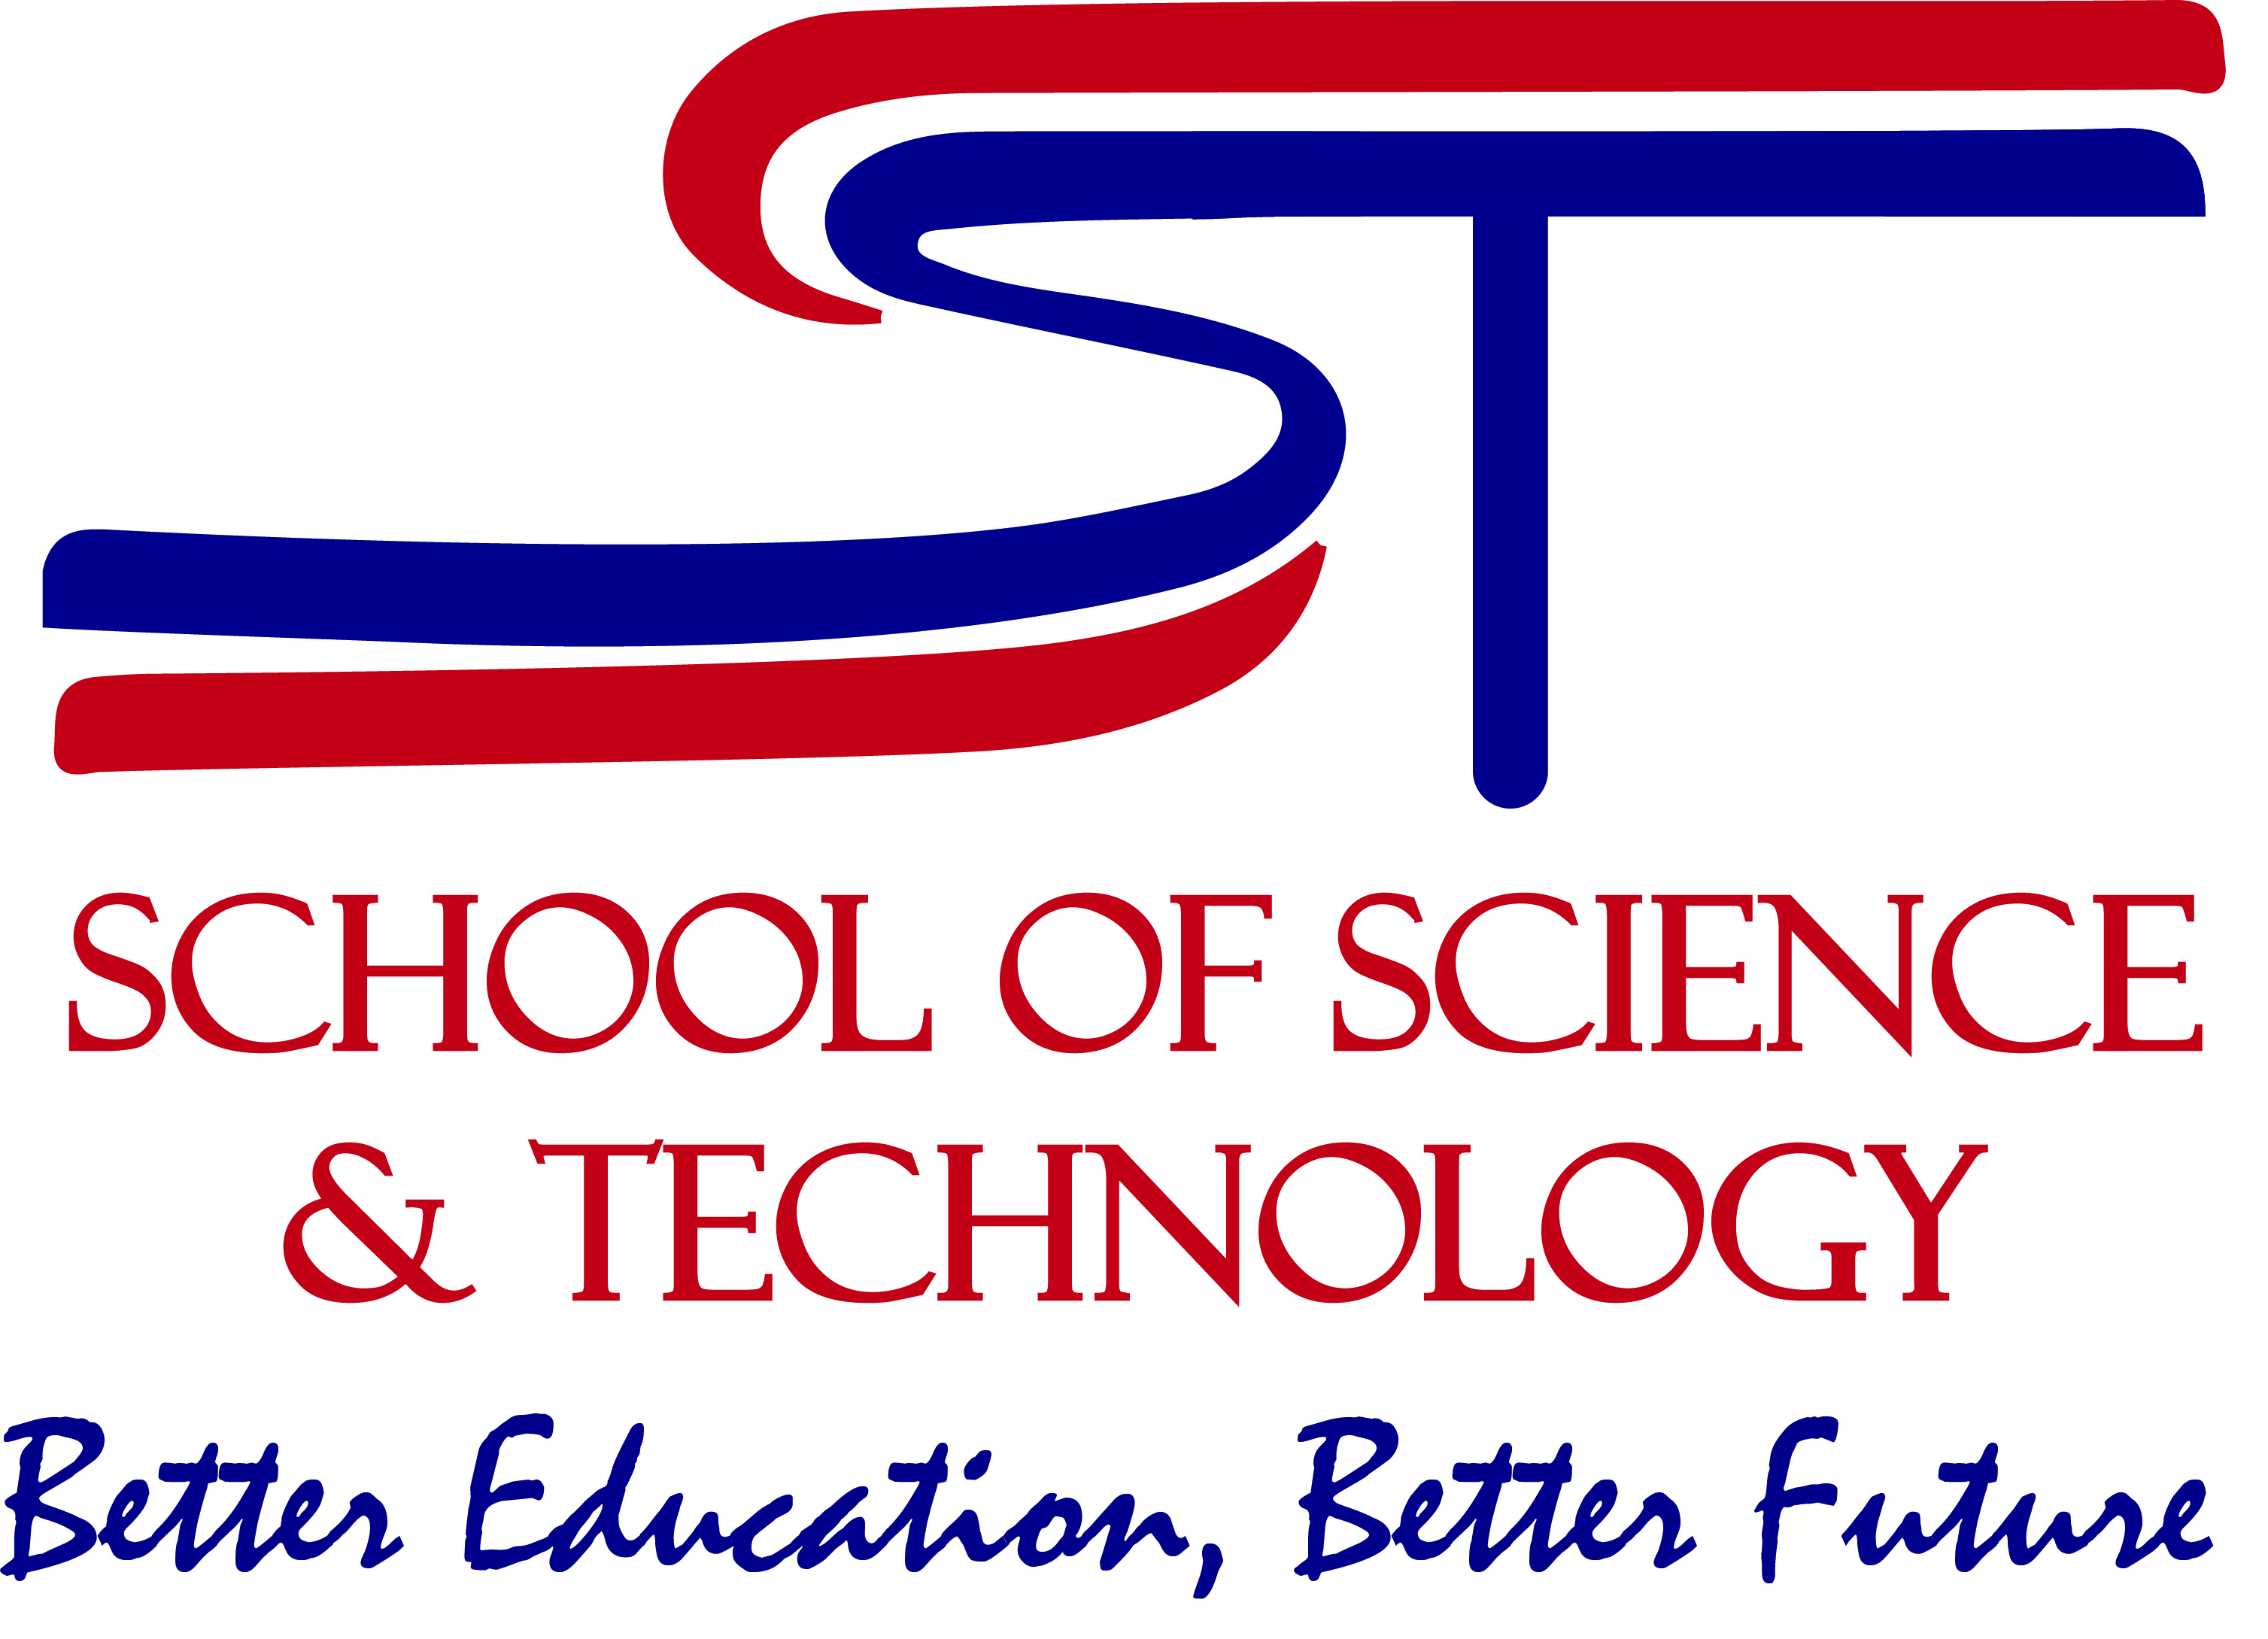 School of Science and Technology TX logo